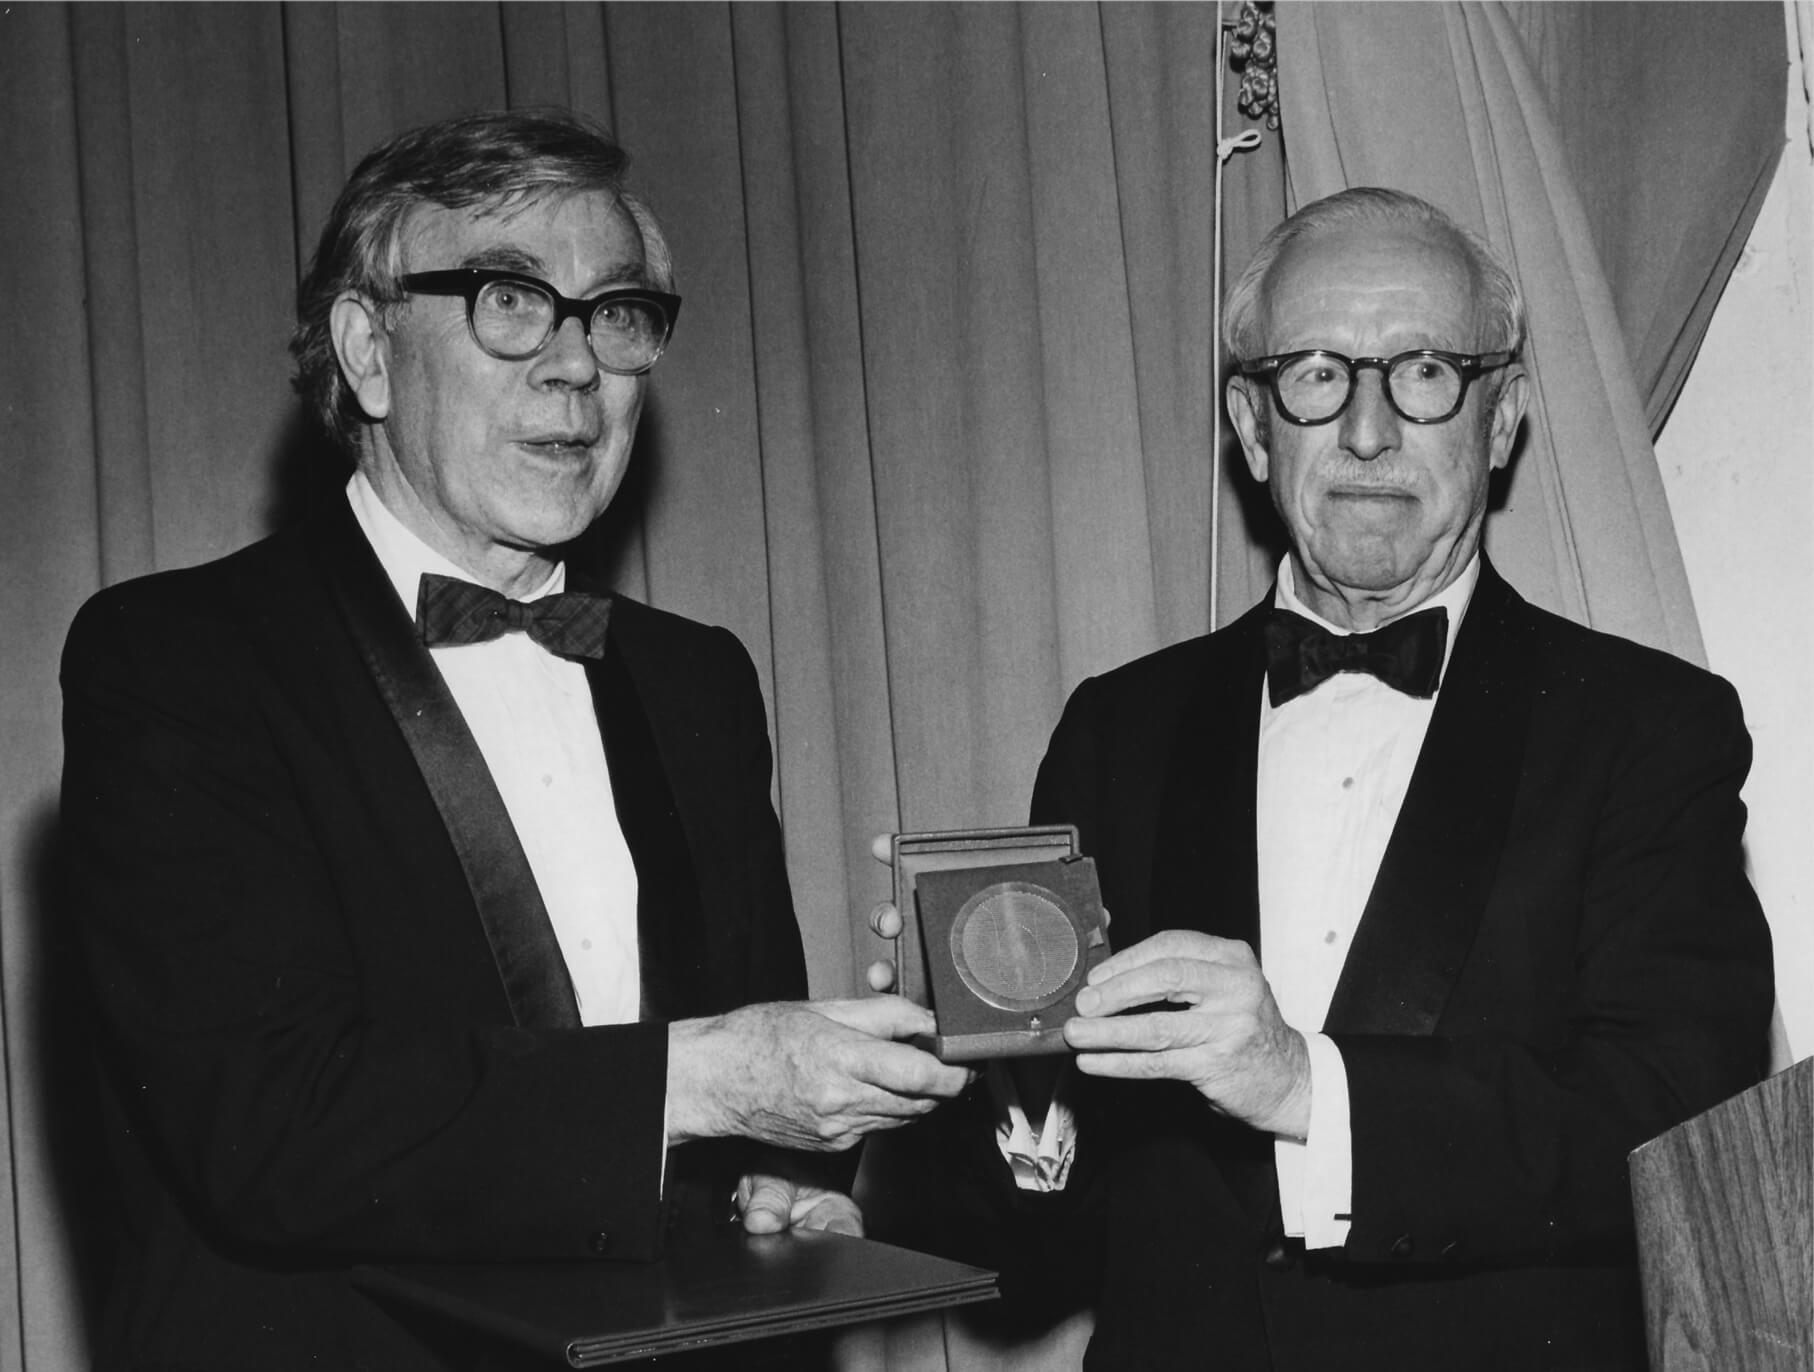 George Rickey receives the Skowhegan School Painting and Sculpture Medal from Lloyd Goodrich, Advisory Director of the Whitney Museum of Art, New York, NY,1973